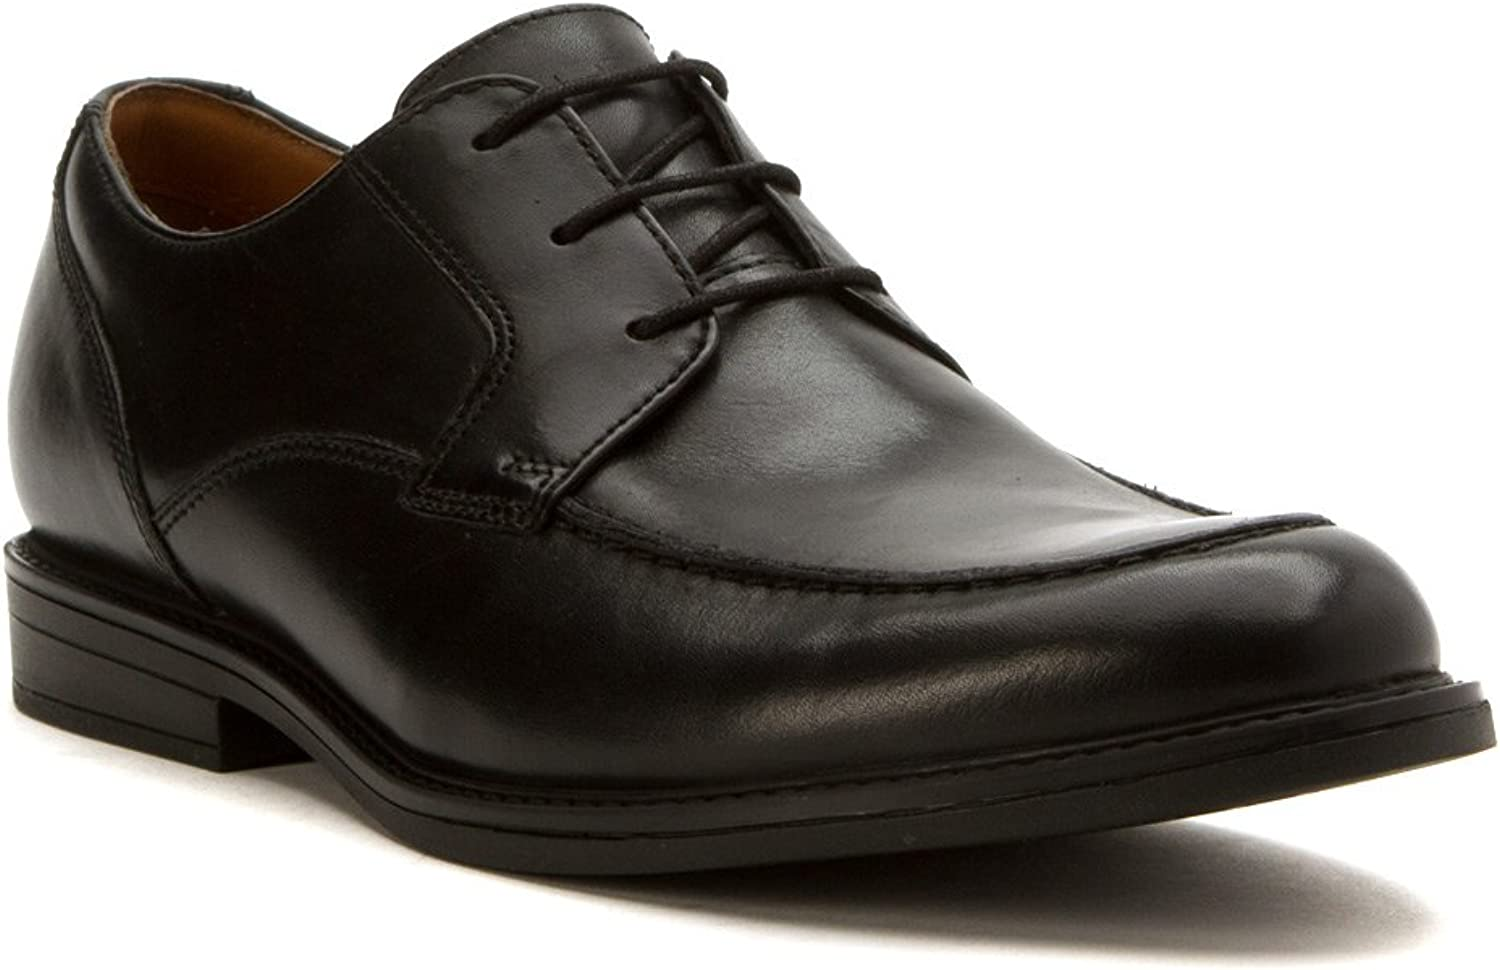 Clarks Men's Beckfield Apron Leather Lace-Up Dress shoes